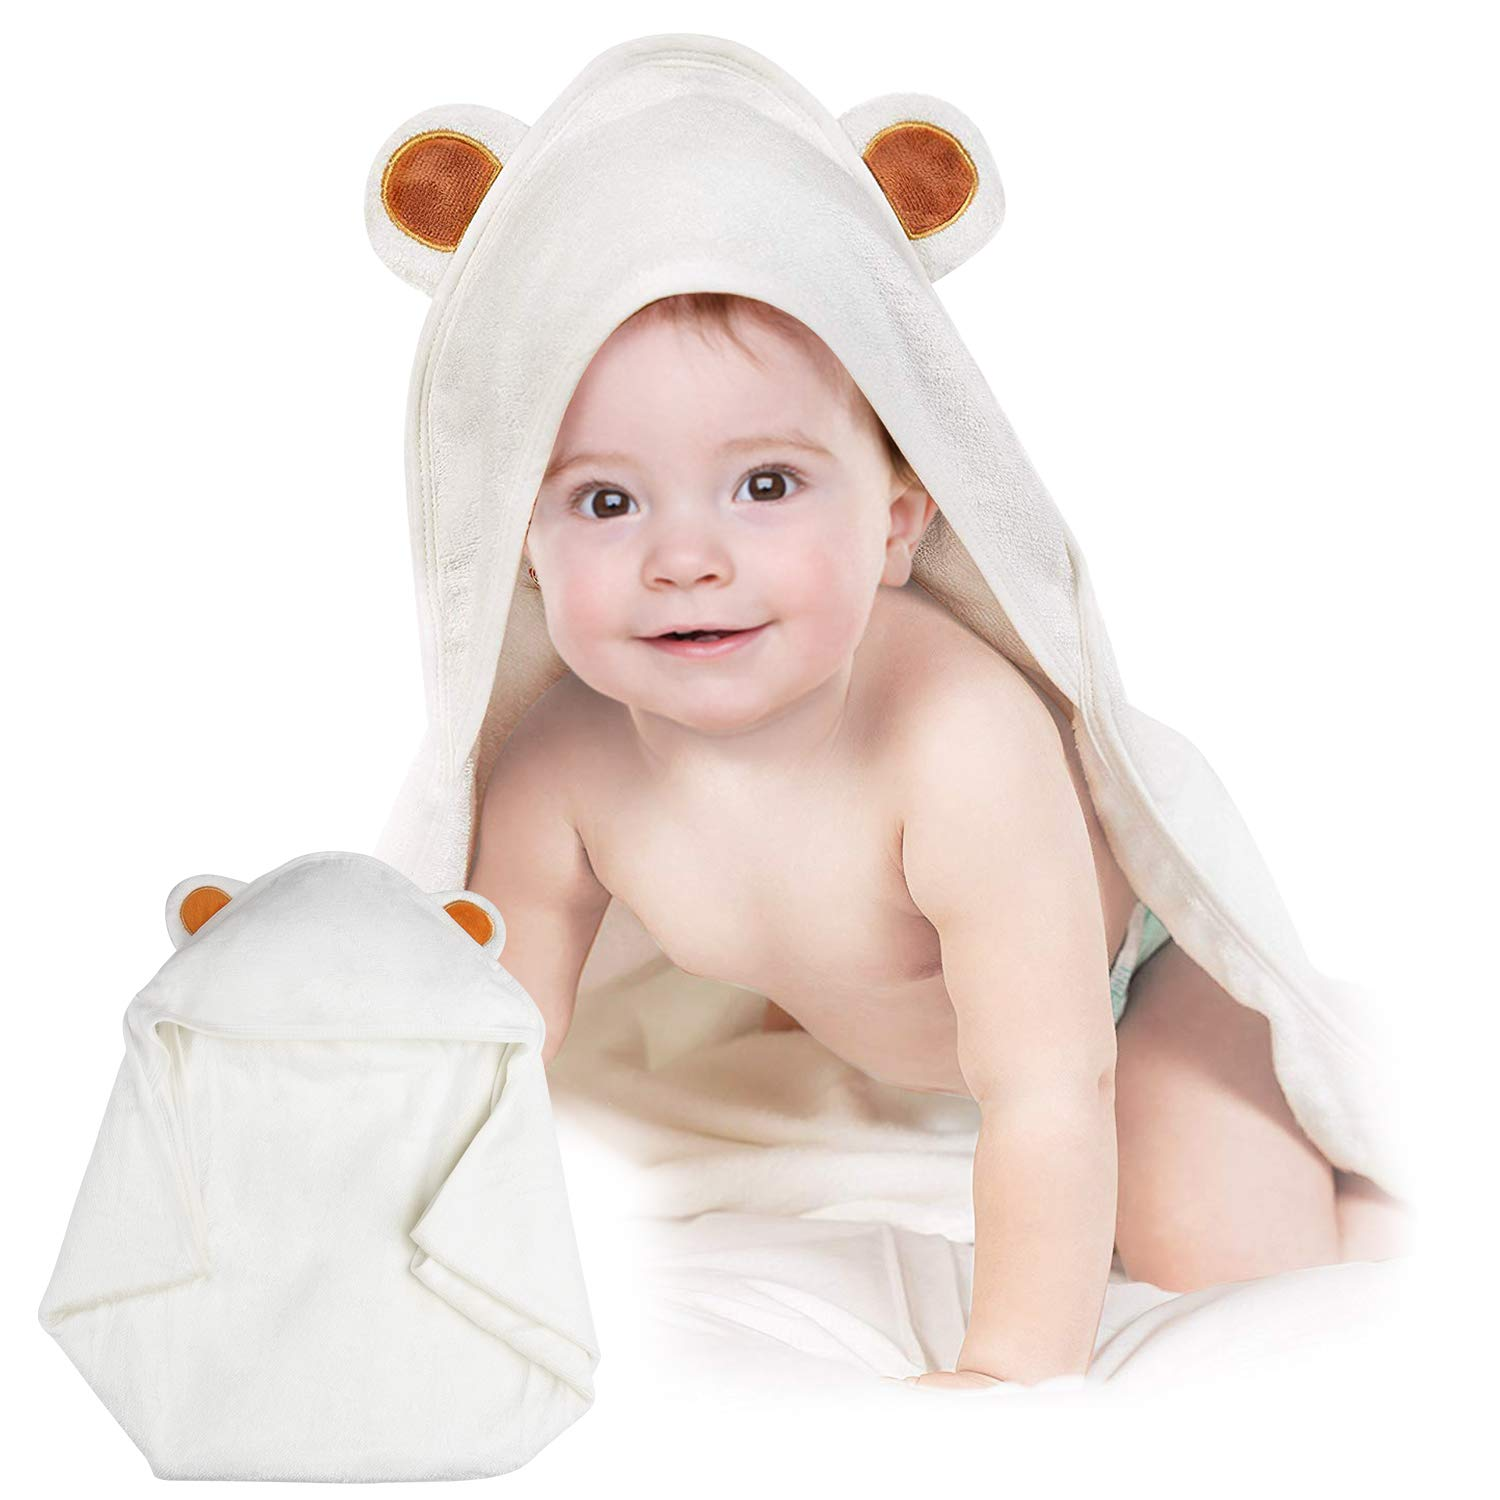 Hooded Baby Towel-Orthland Ultra Soft Baby Towels Antibacterial and Hypoallergenic Organic Bamboo Bath Wrap with Hood (35''x35'') for Newborn and Toddler (0-5 Years Boys and Girls) Baby Registry Gift